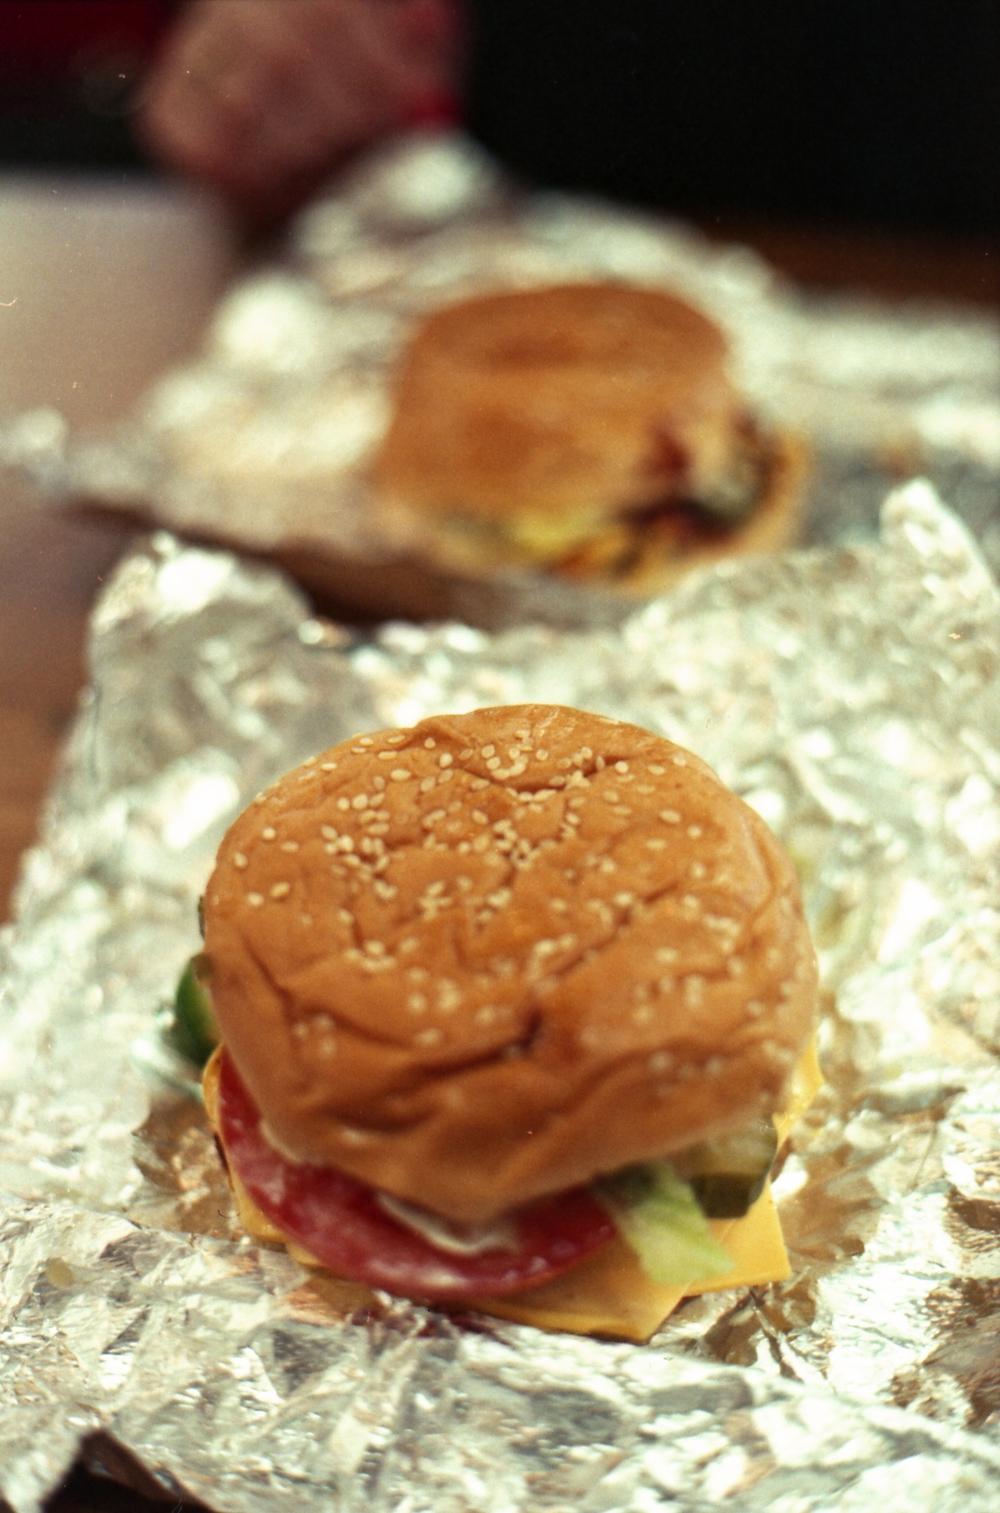 179/366 - Five Guys lunch with a friend, yum. Though pricey I think...